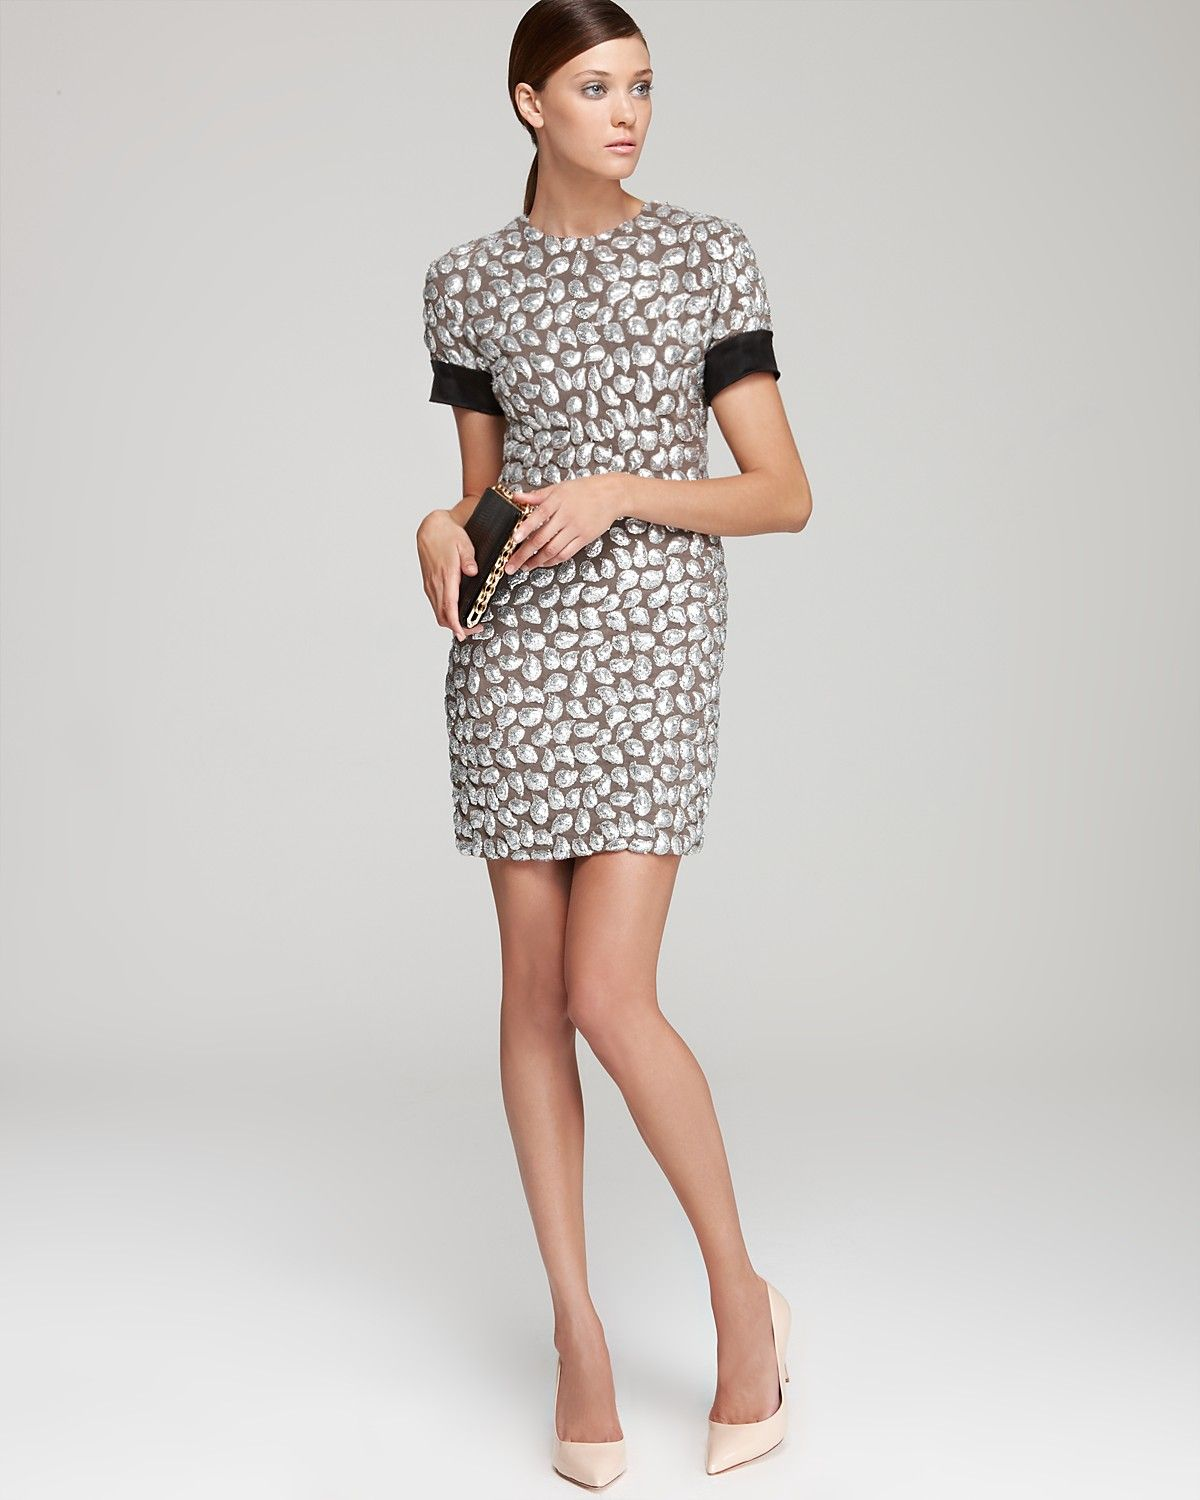 DIANE von FURSTENBERG New Cindy Puffy Sequins Dress &amp Platform ...